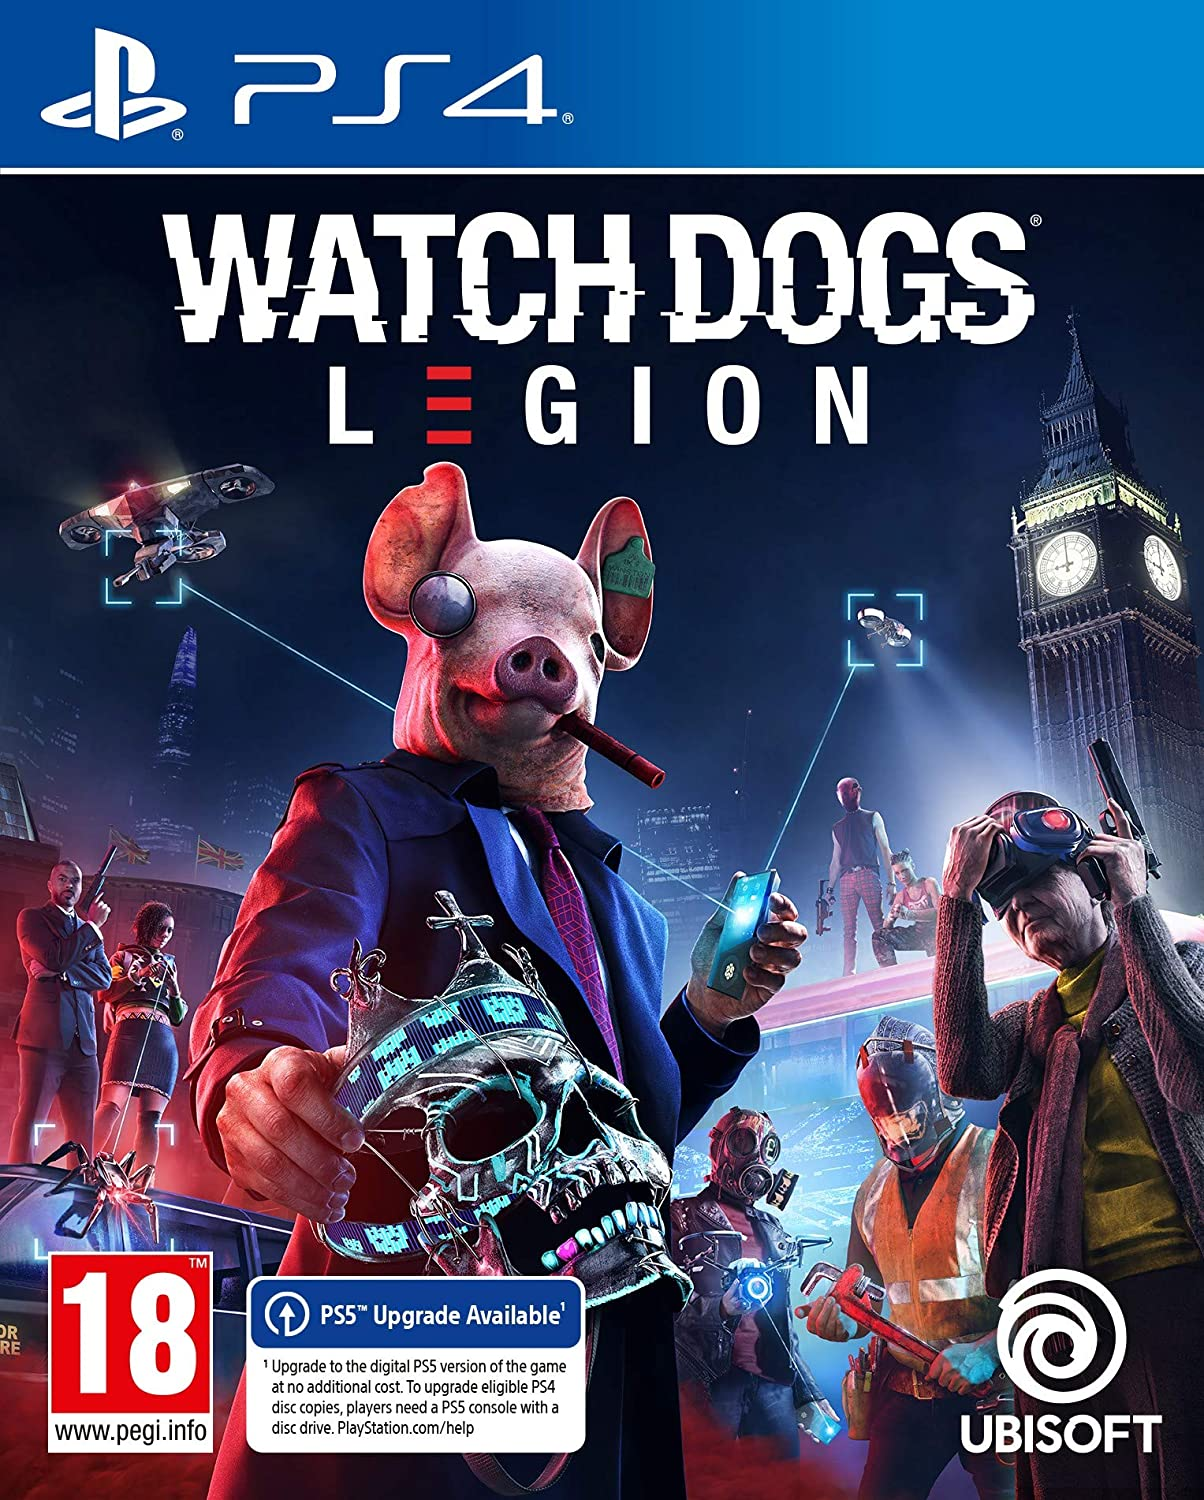 watch dogs legion ps4 amazon Cheaper Than Retail Price> Buy ...